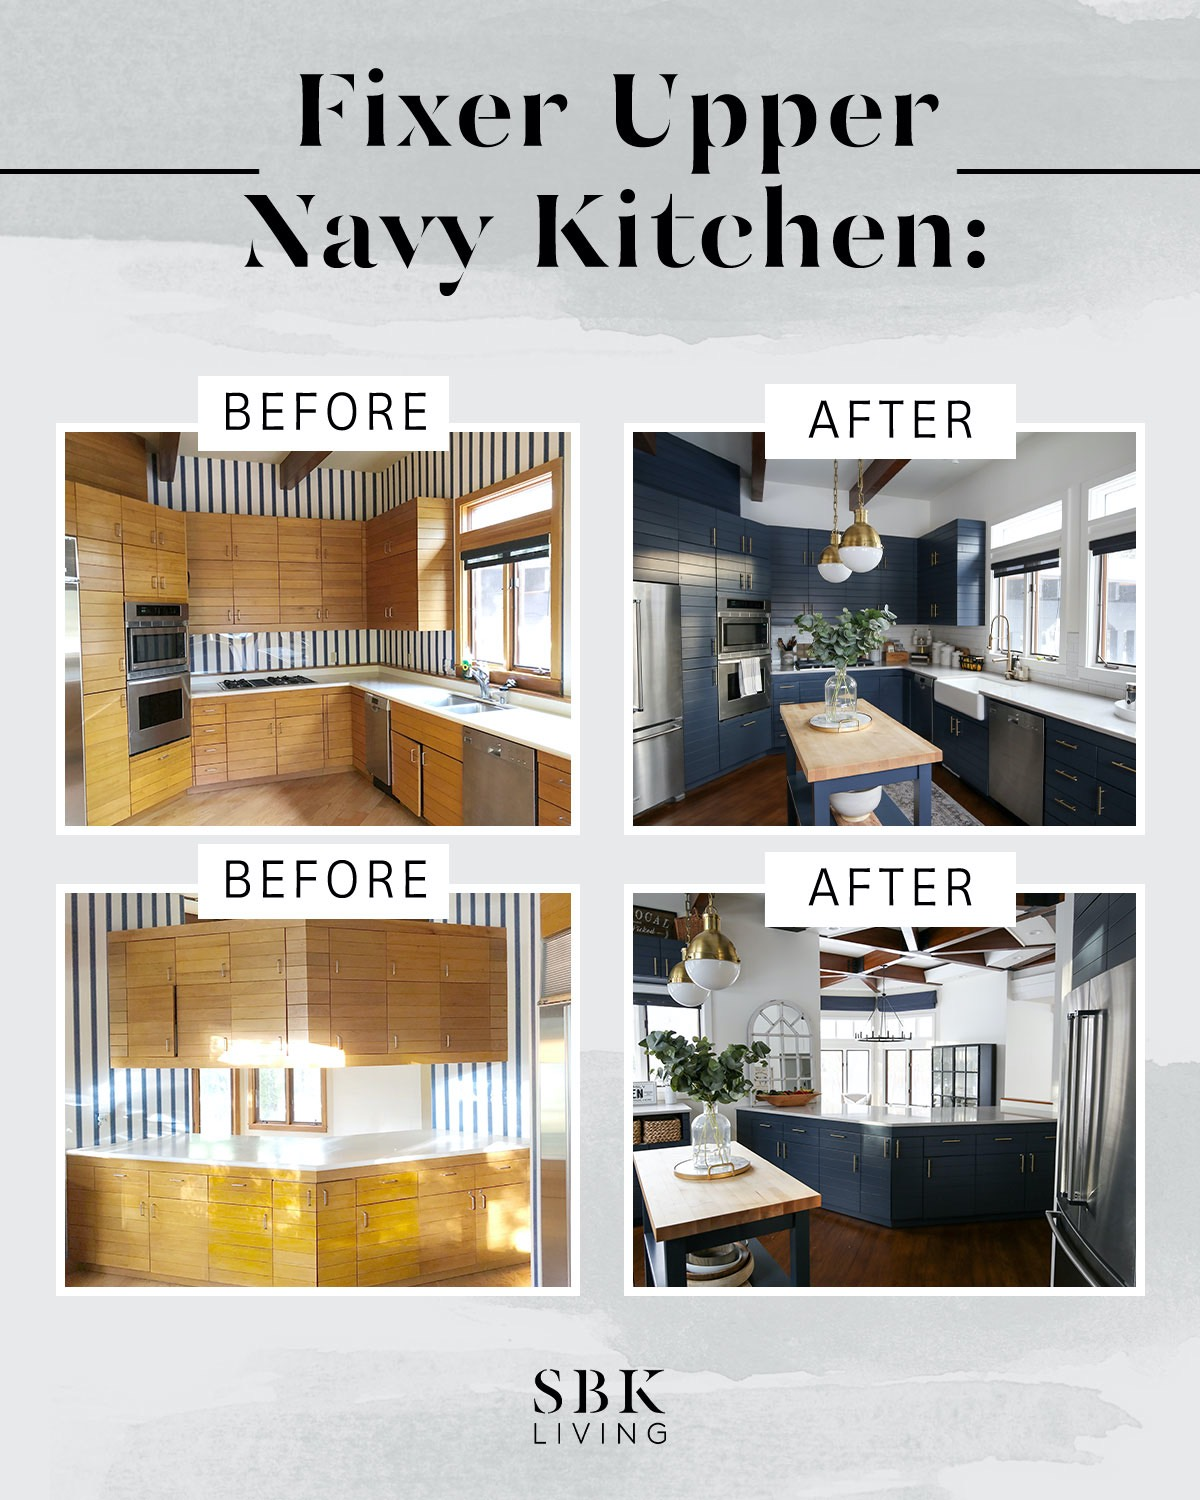 fixer upper kitchen before and after